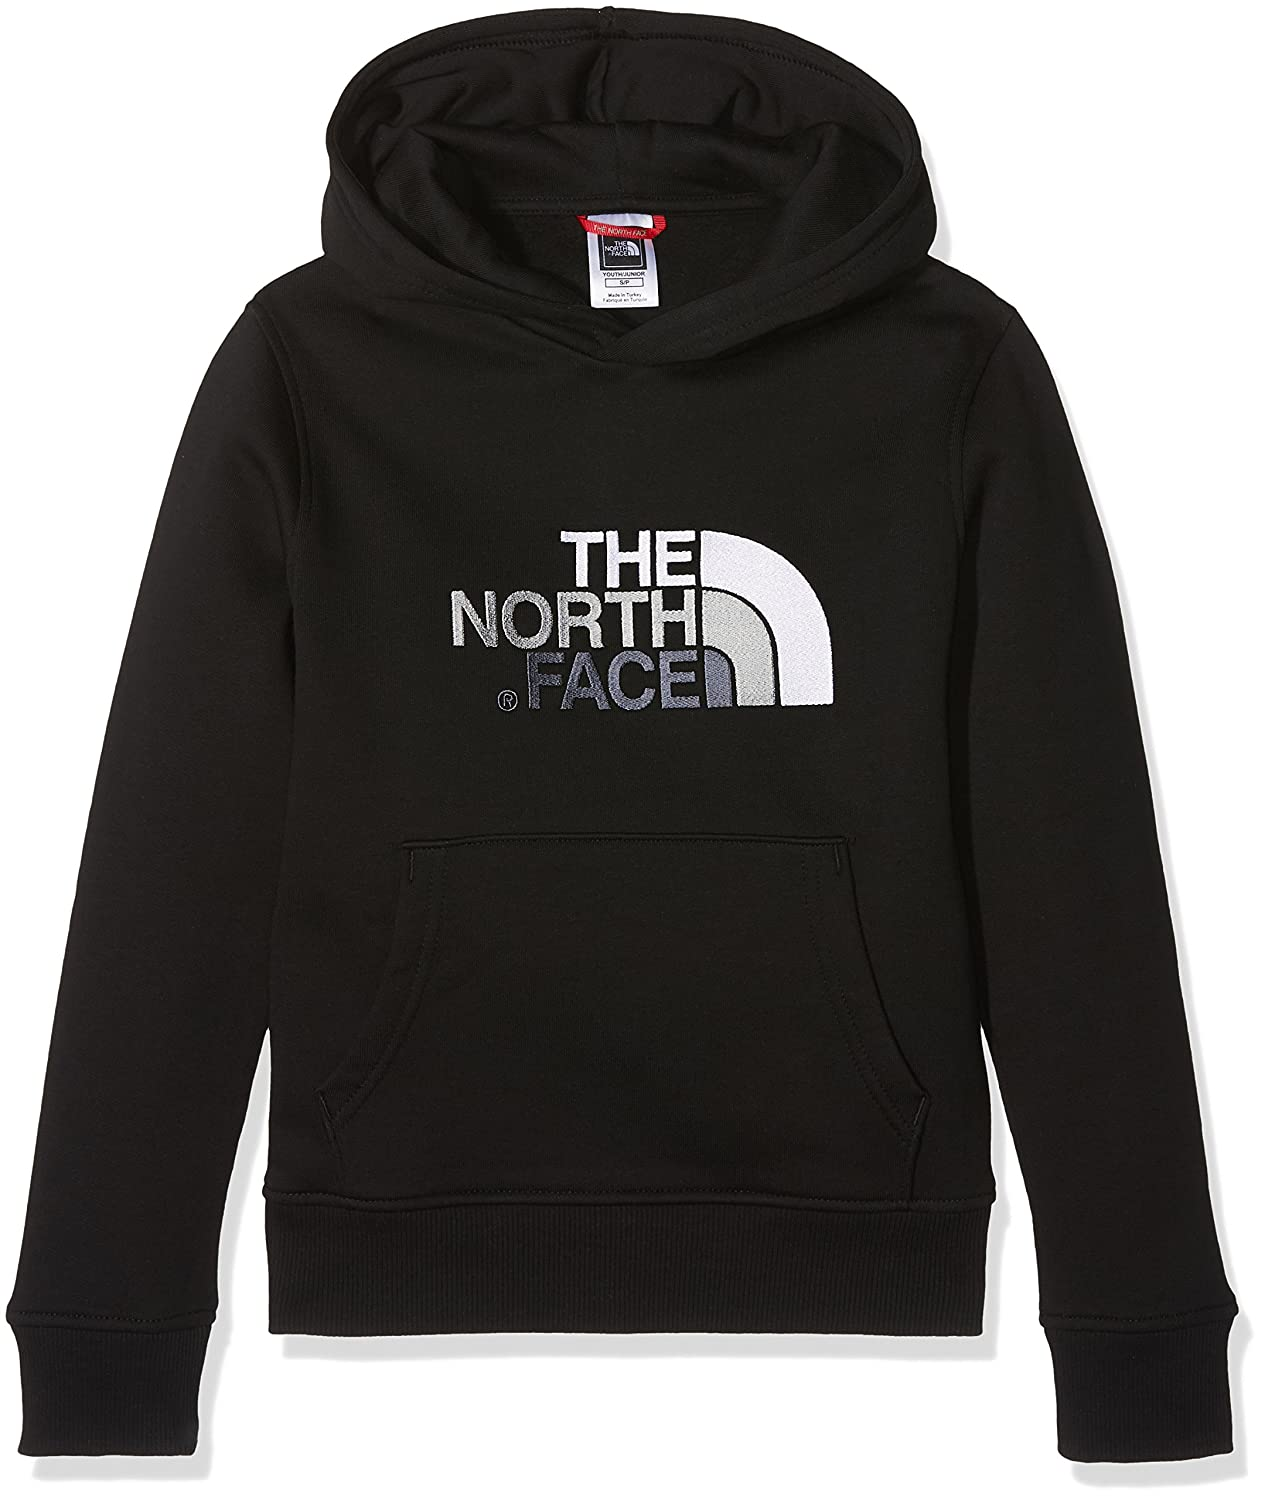 lowest price save up to 80% designer fashion THE NORTH FACE Children's Youth Drew Peak Hoodie